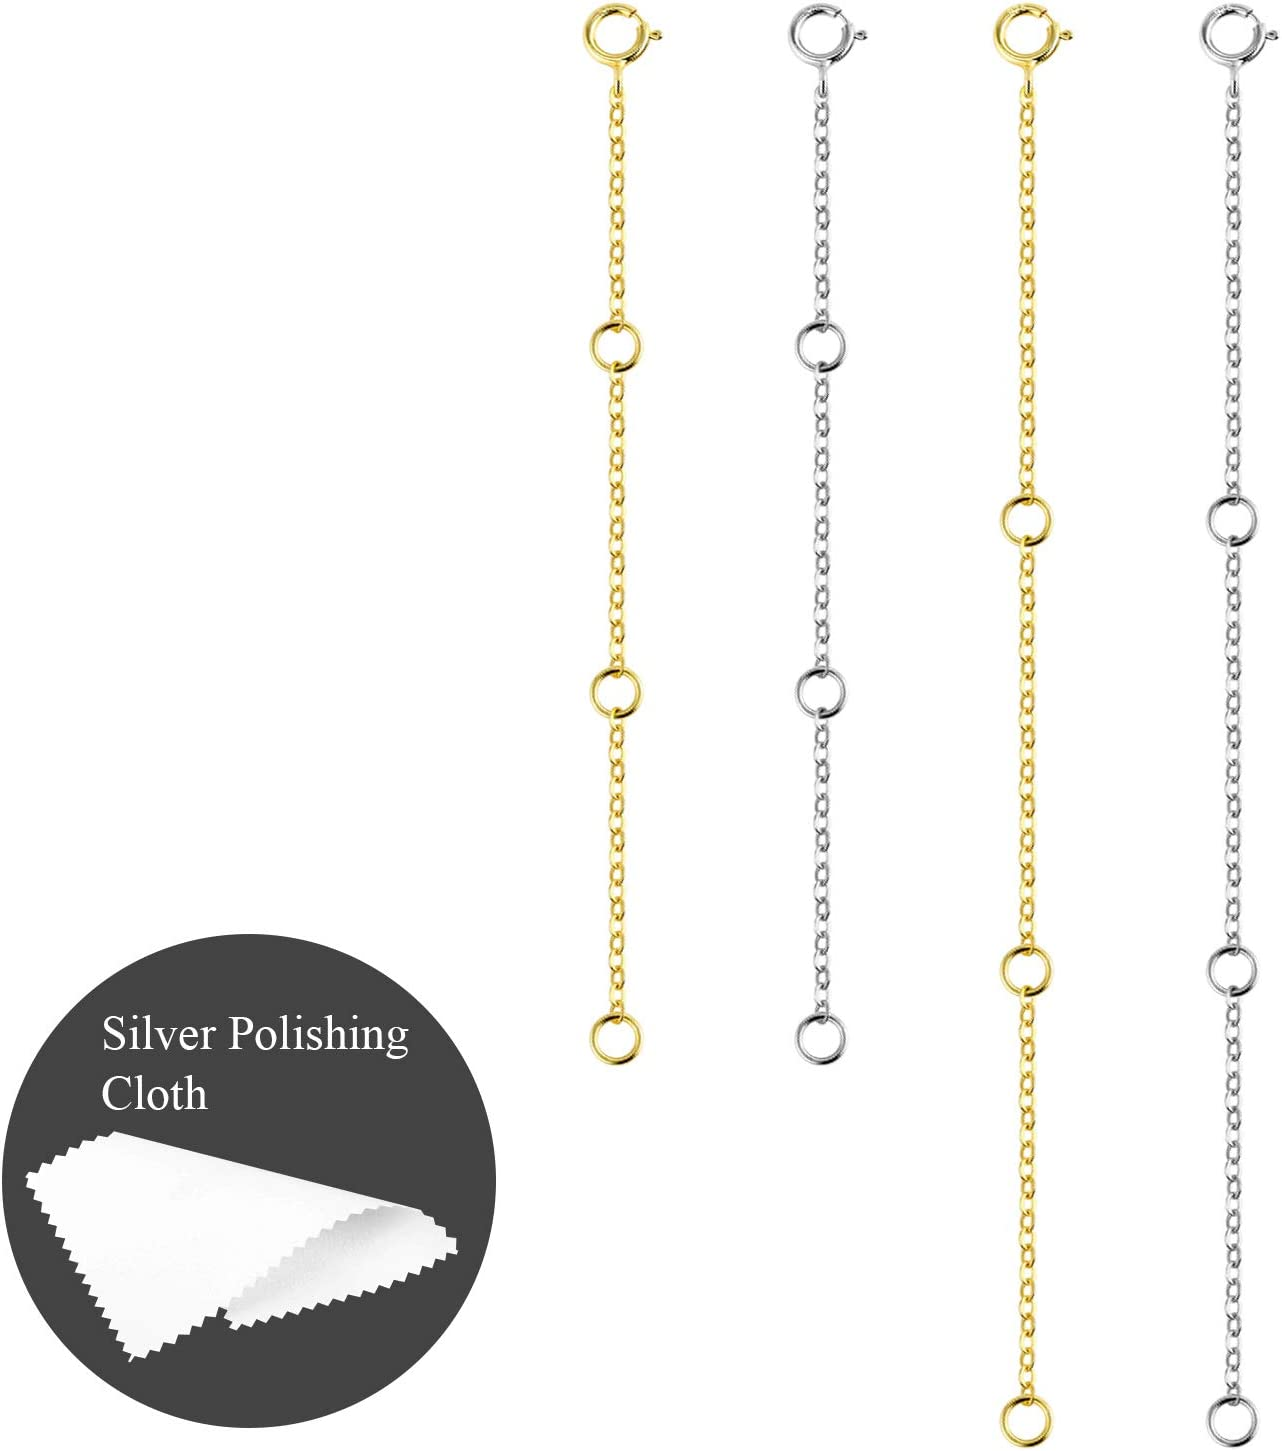 Silver ALEXCRAFT 3pcs Sterling Silver Chain Extender Necklace for Jewellery Making 2,3,4inch